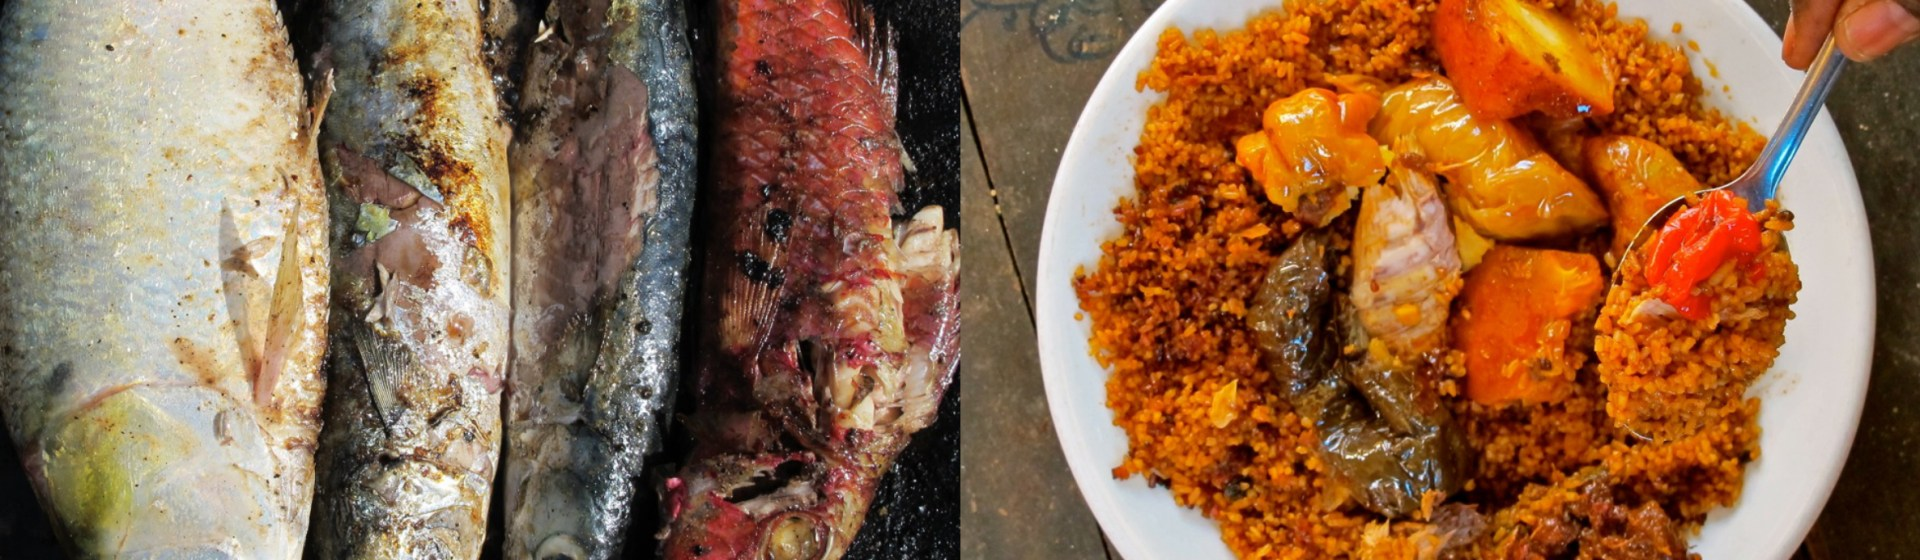 7 Places To Eat And Drink Incredibly Well In Dakar, Senegal - Food